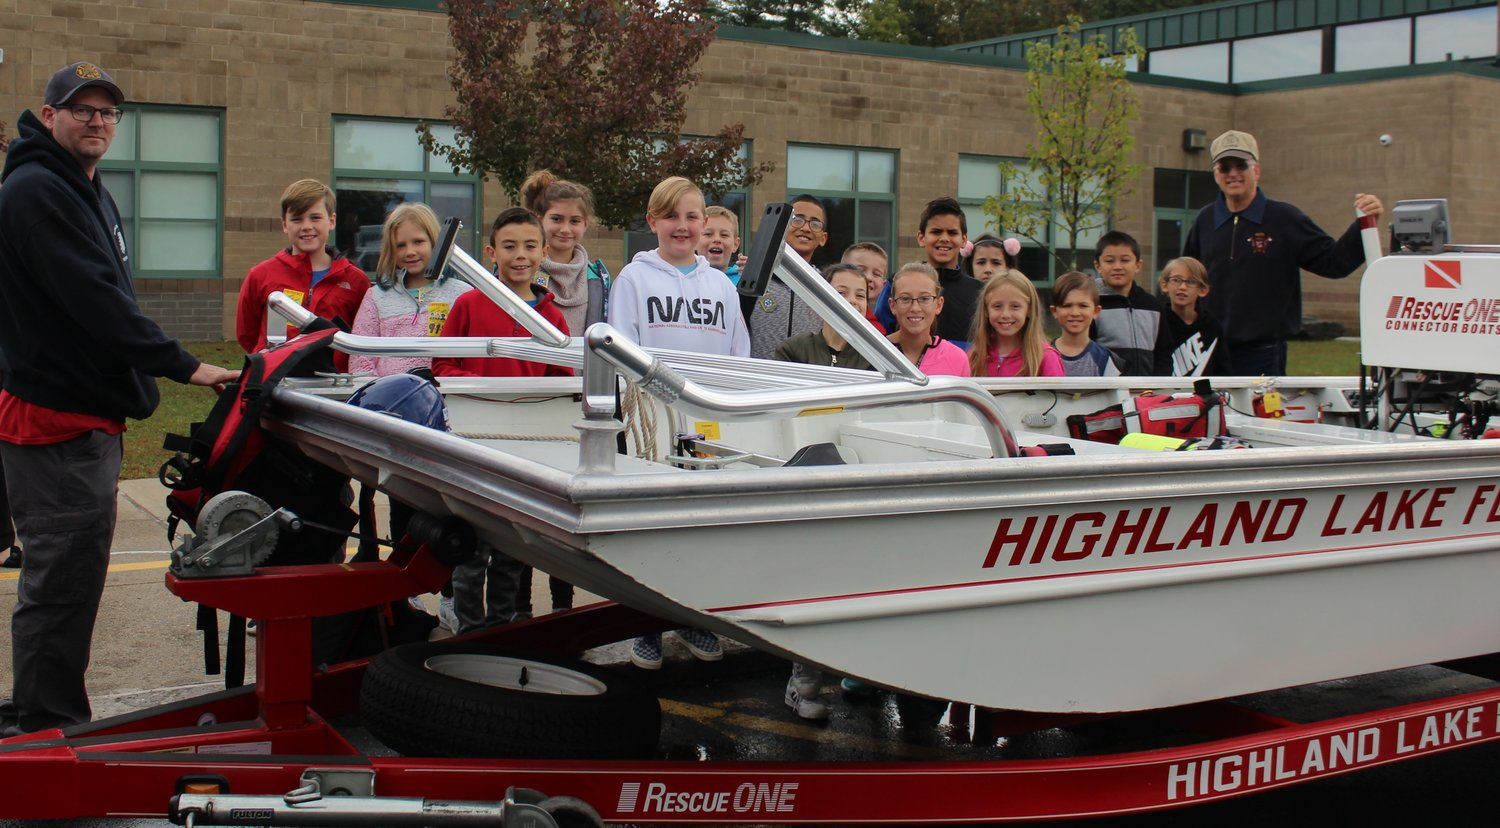 Members of the Highland Lake Fire Department and fourth graders reviewed boating safety tips and equipment used to perform water rescues during Fire Prevention Week.